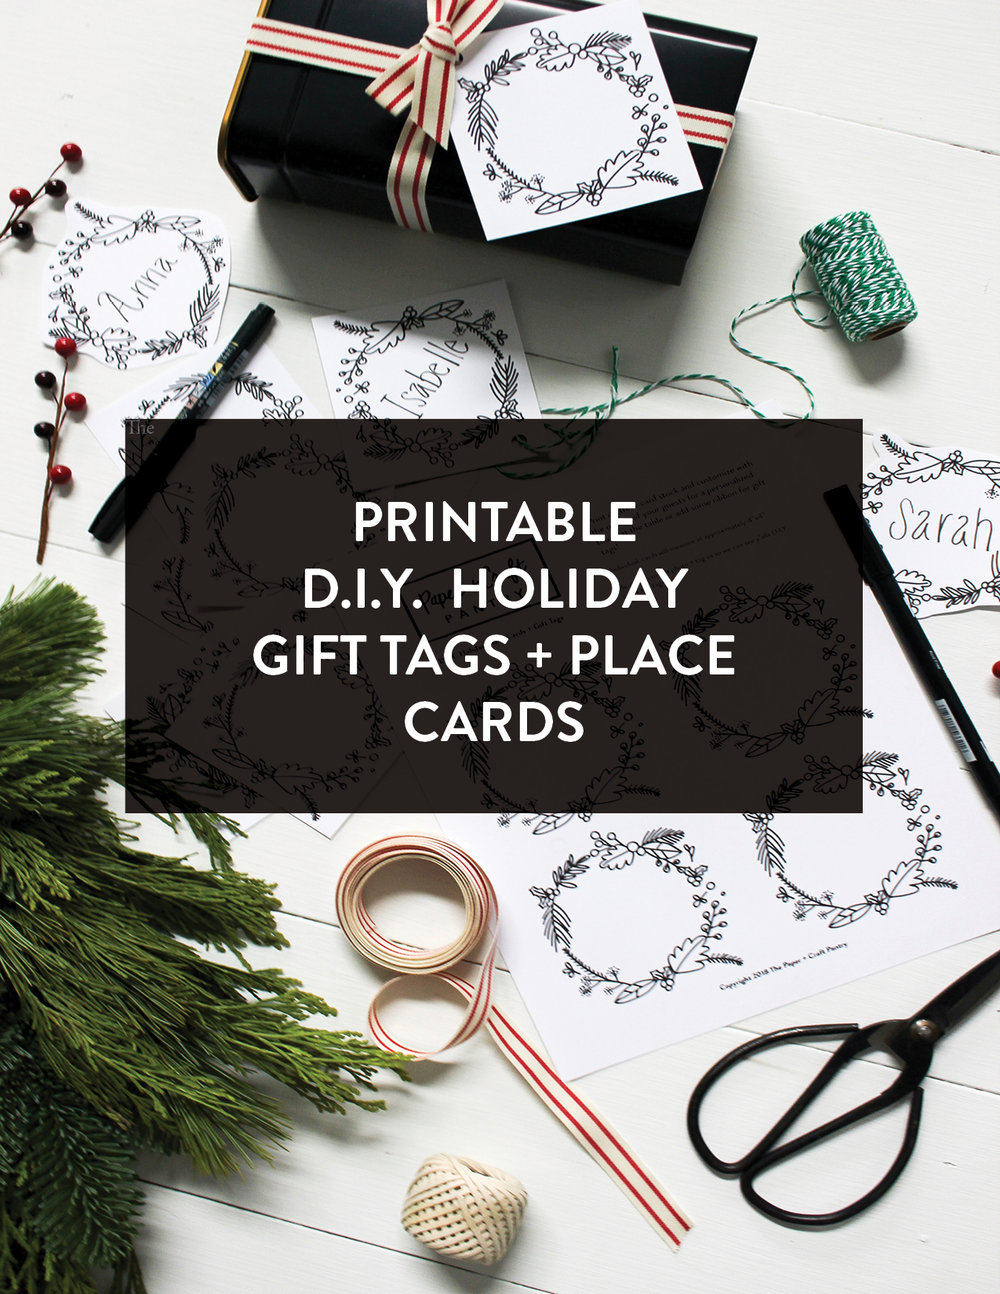 The Paper + Craft Pantry Austin- Pinterest printable diy holiday gift tags + place cards